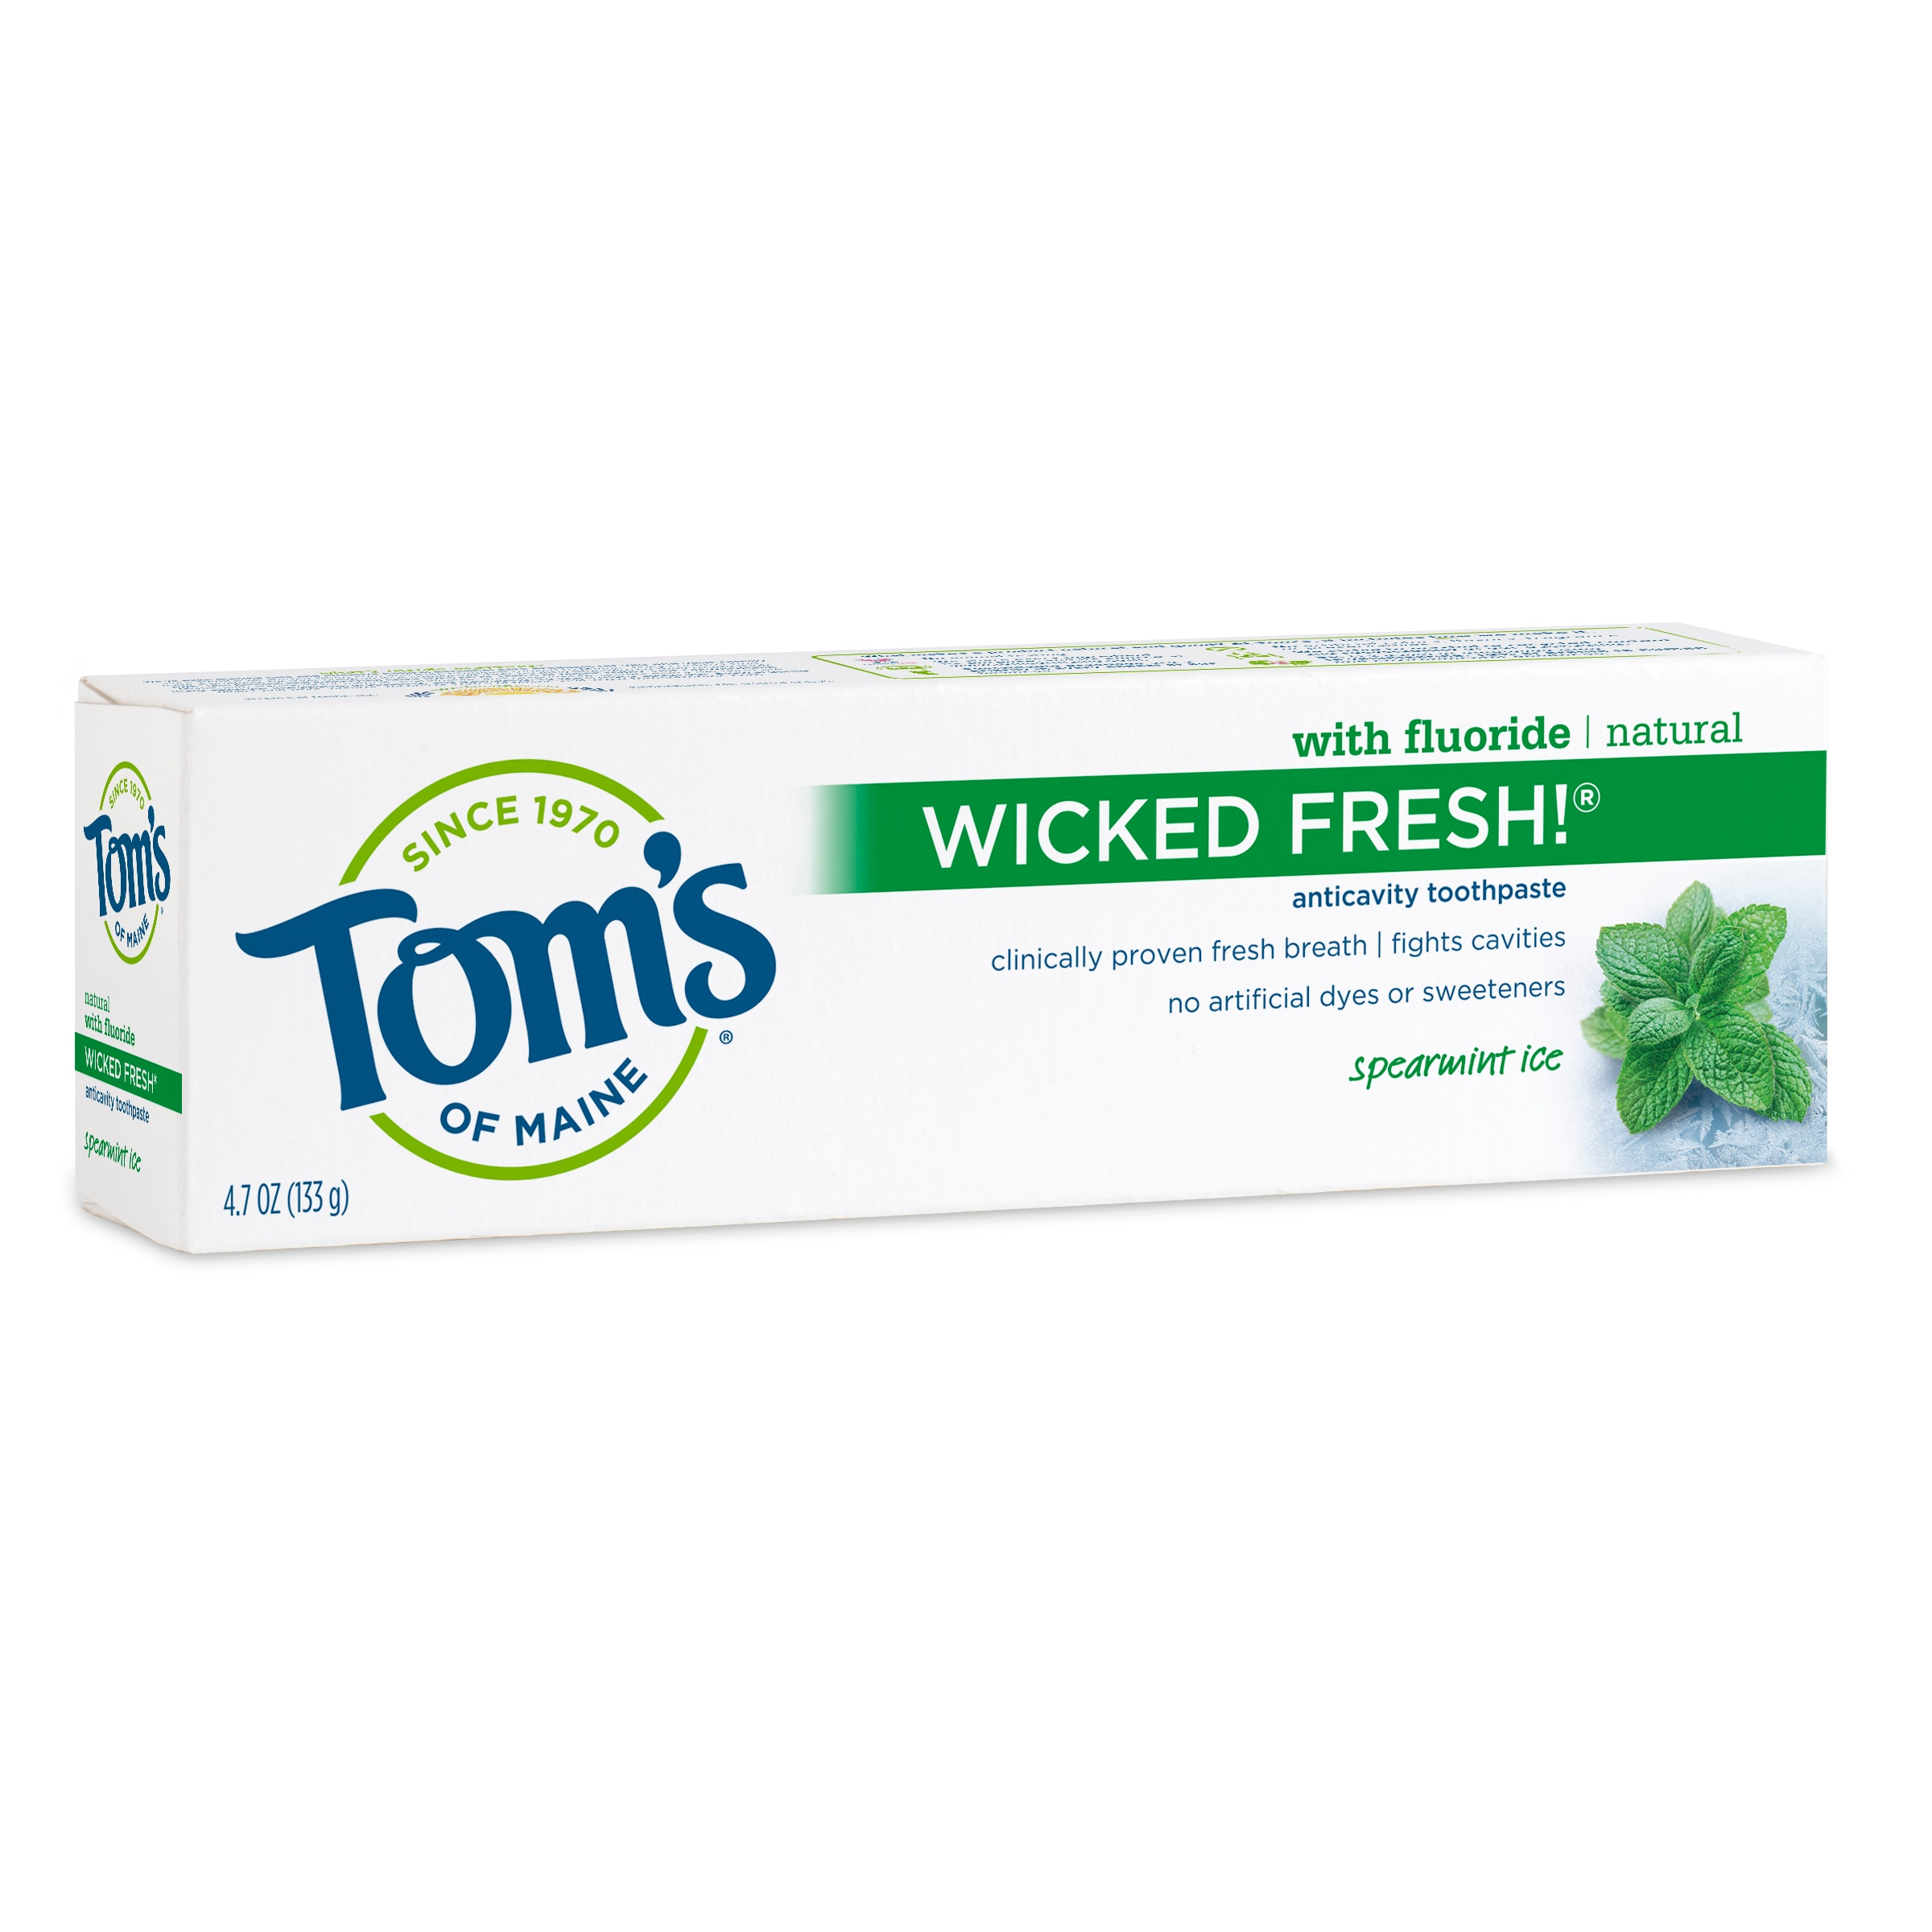 Wicked Fresh!™ Toothpaste